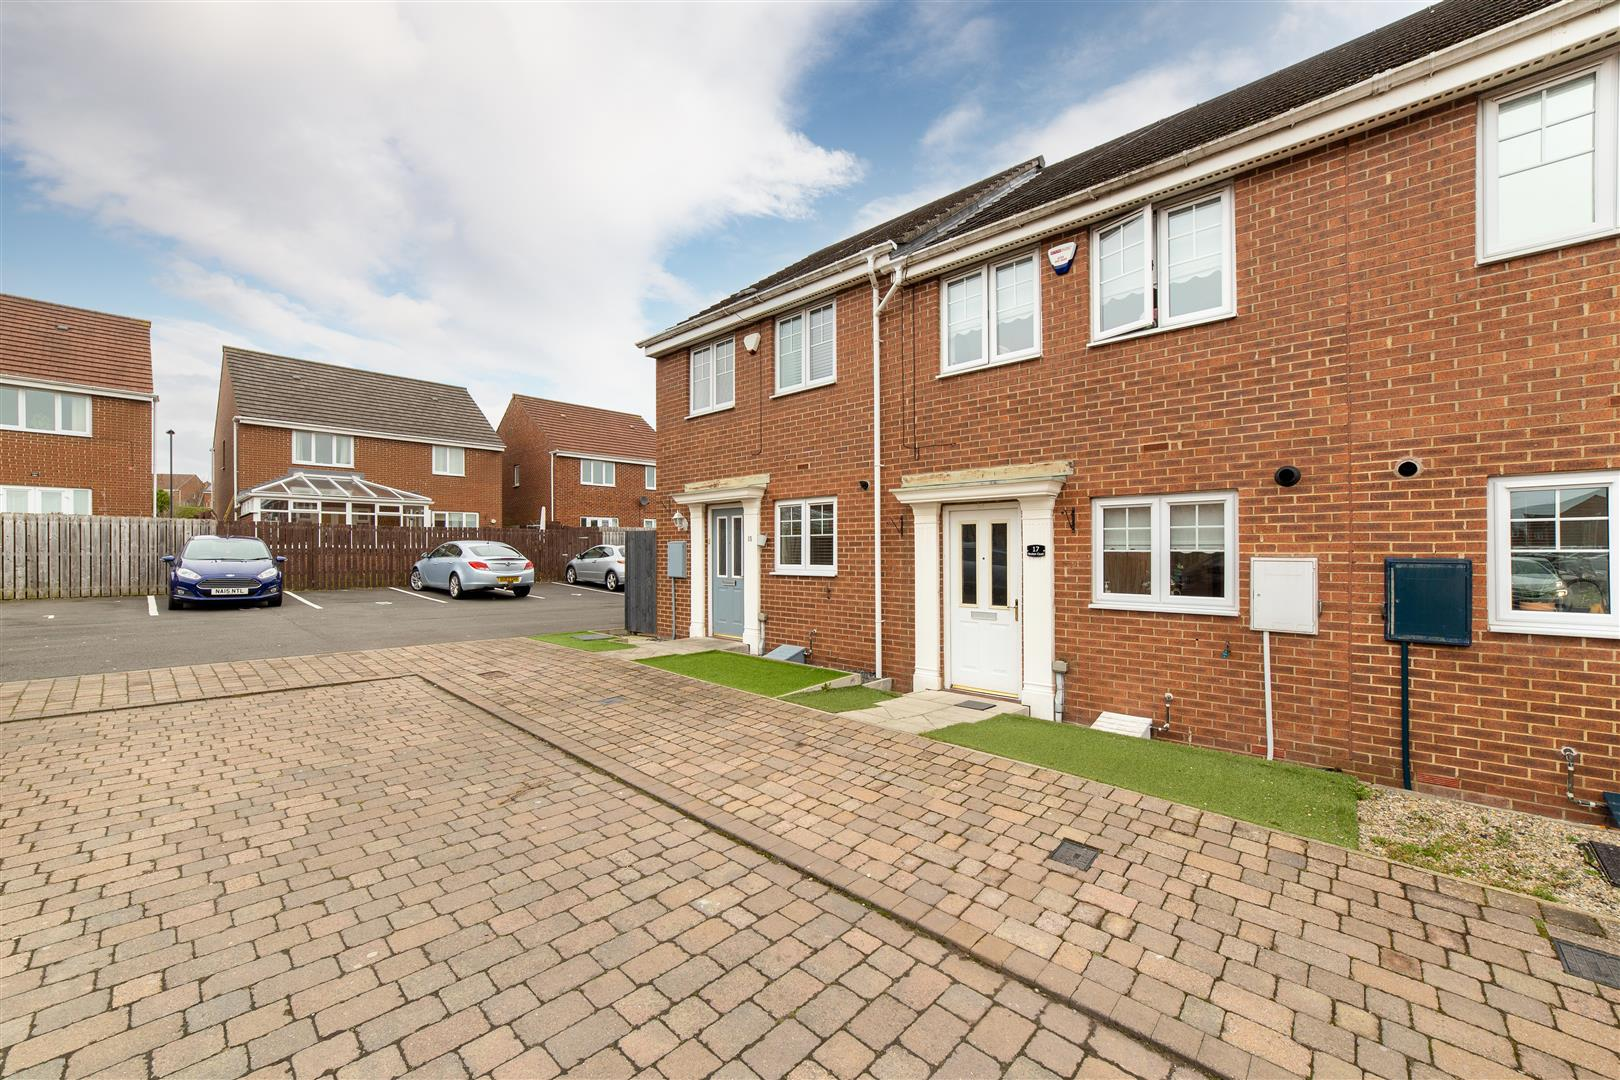 2 bed terraced house for sale in Kenton, NE3 3GS, NE3